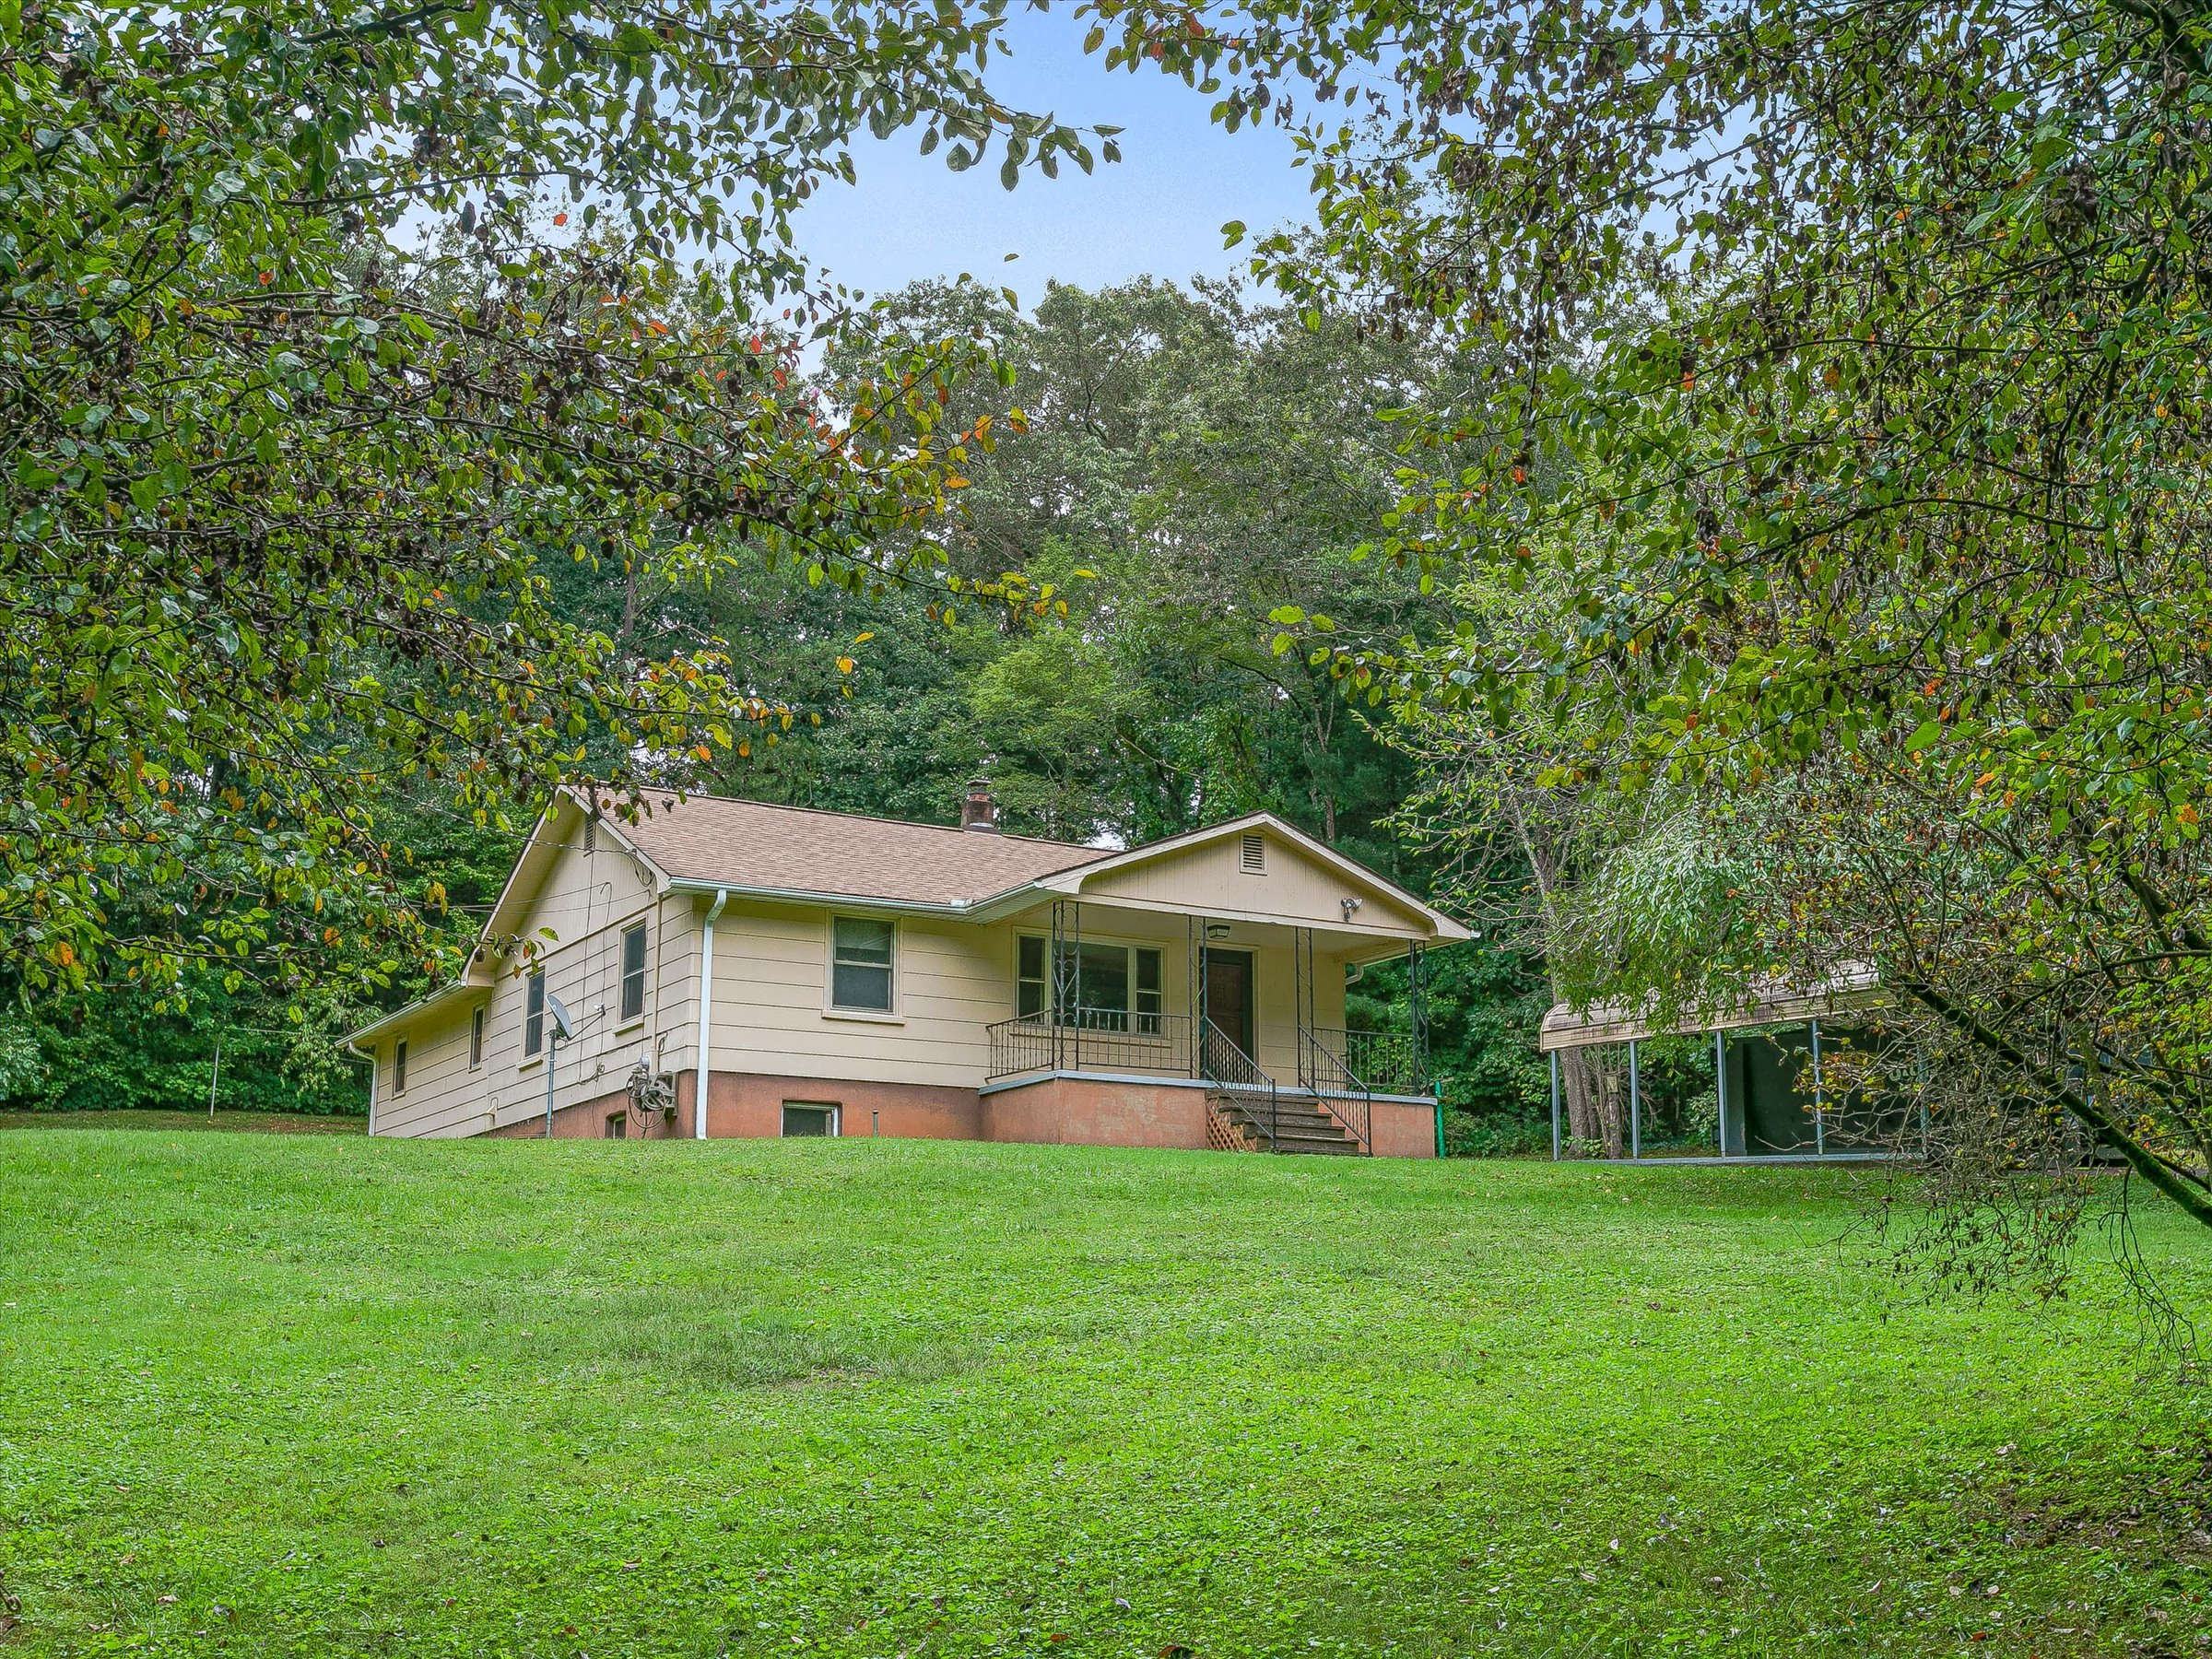 3 Bedroom Home for Sale in Swannanoa